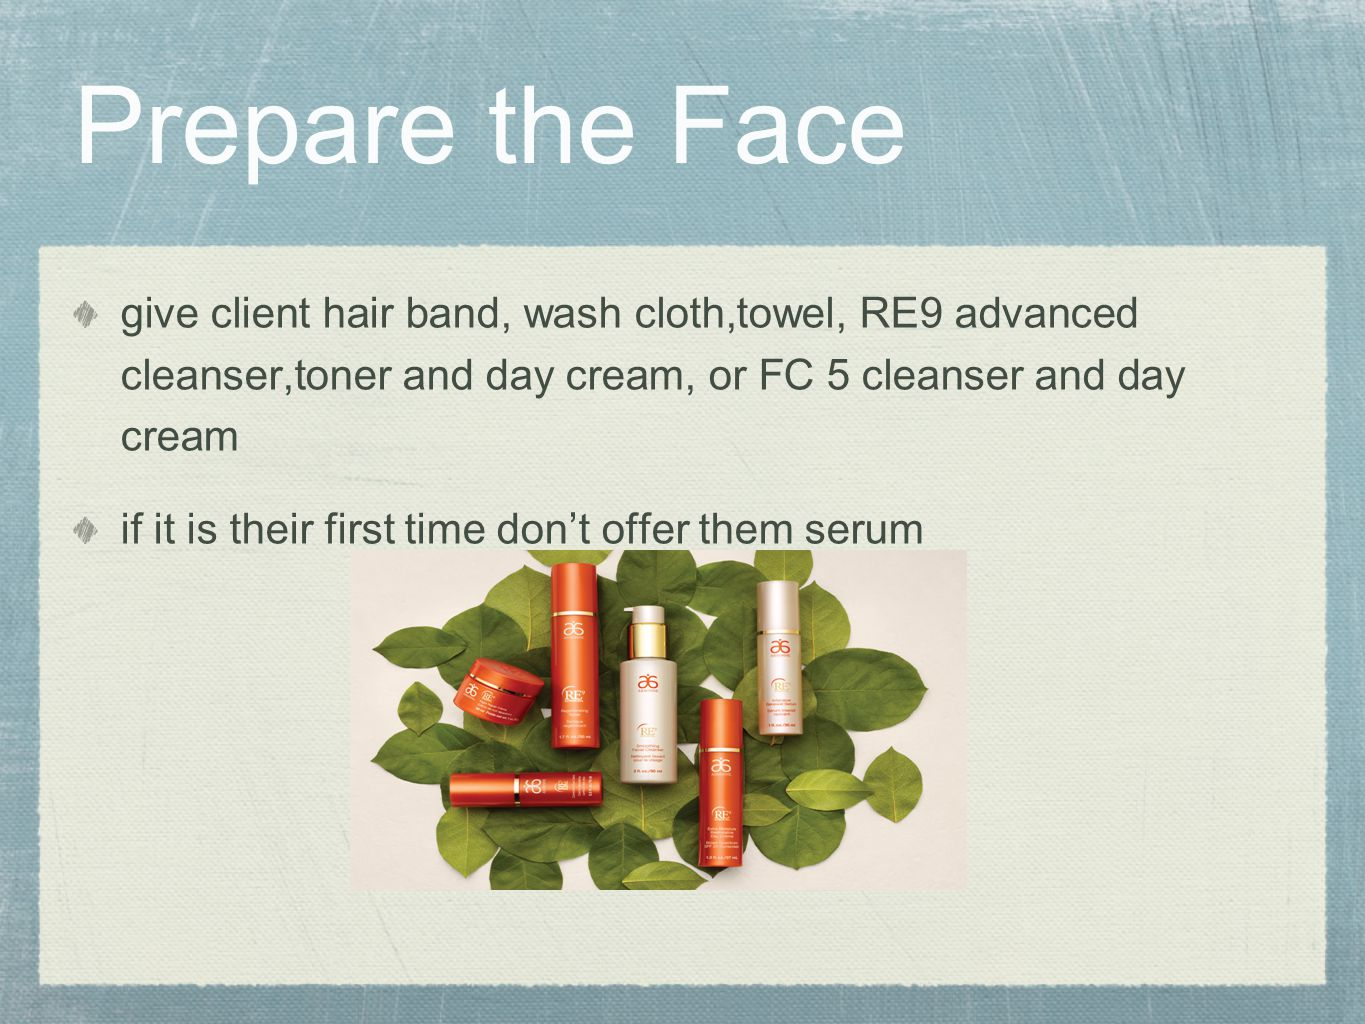 Prepare the Face give client hair band, wash cloth,towel, RE9 advanced cleanser,toner and day cream, or FC 5 cleanser and day cream.